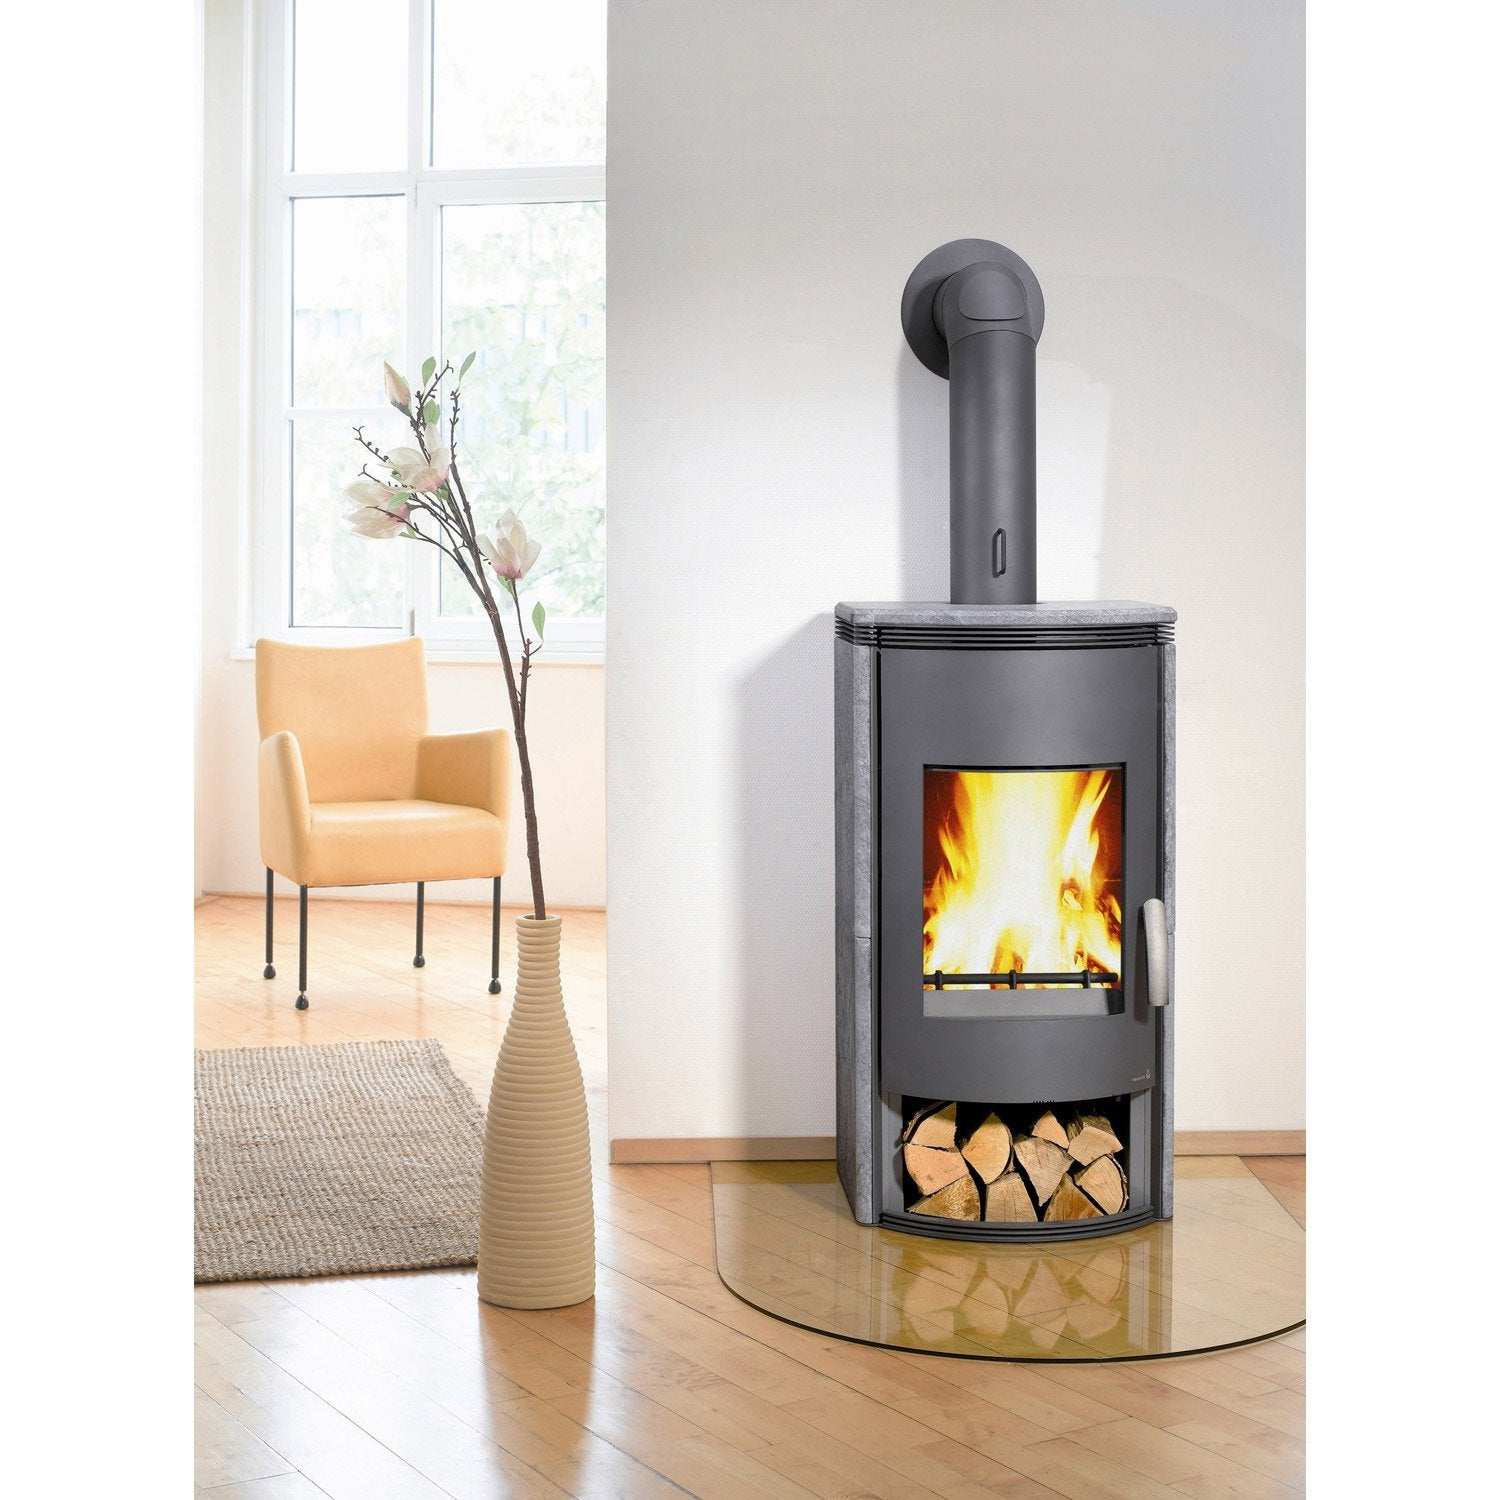 Po le bois wamsler wega anthracite pierre ollaire 8 kw for Leroy merlin poele a bois